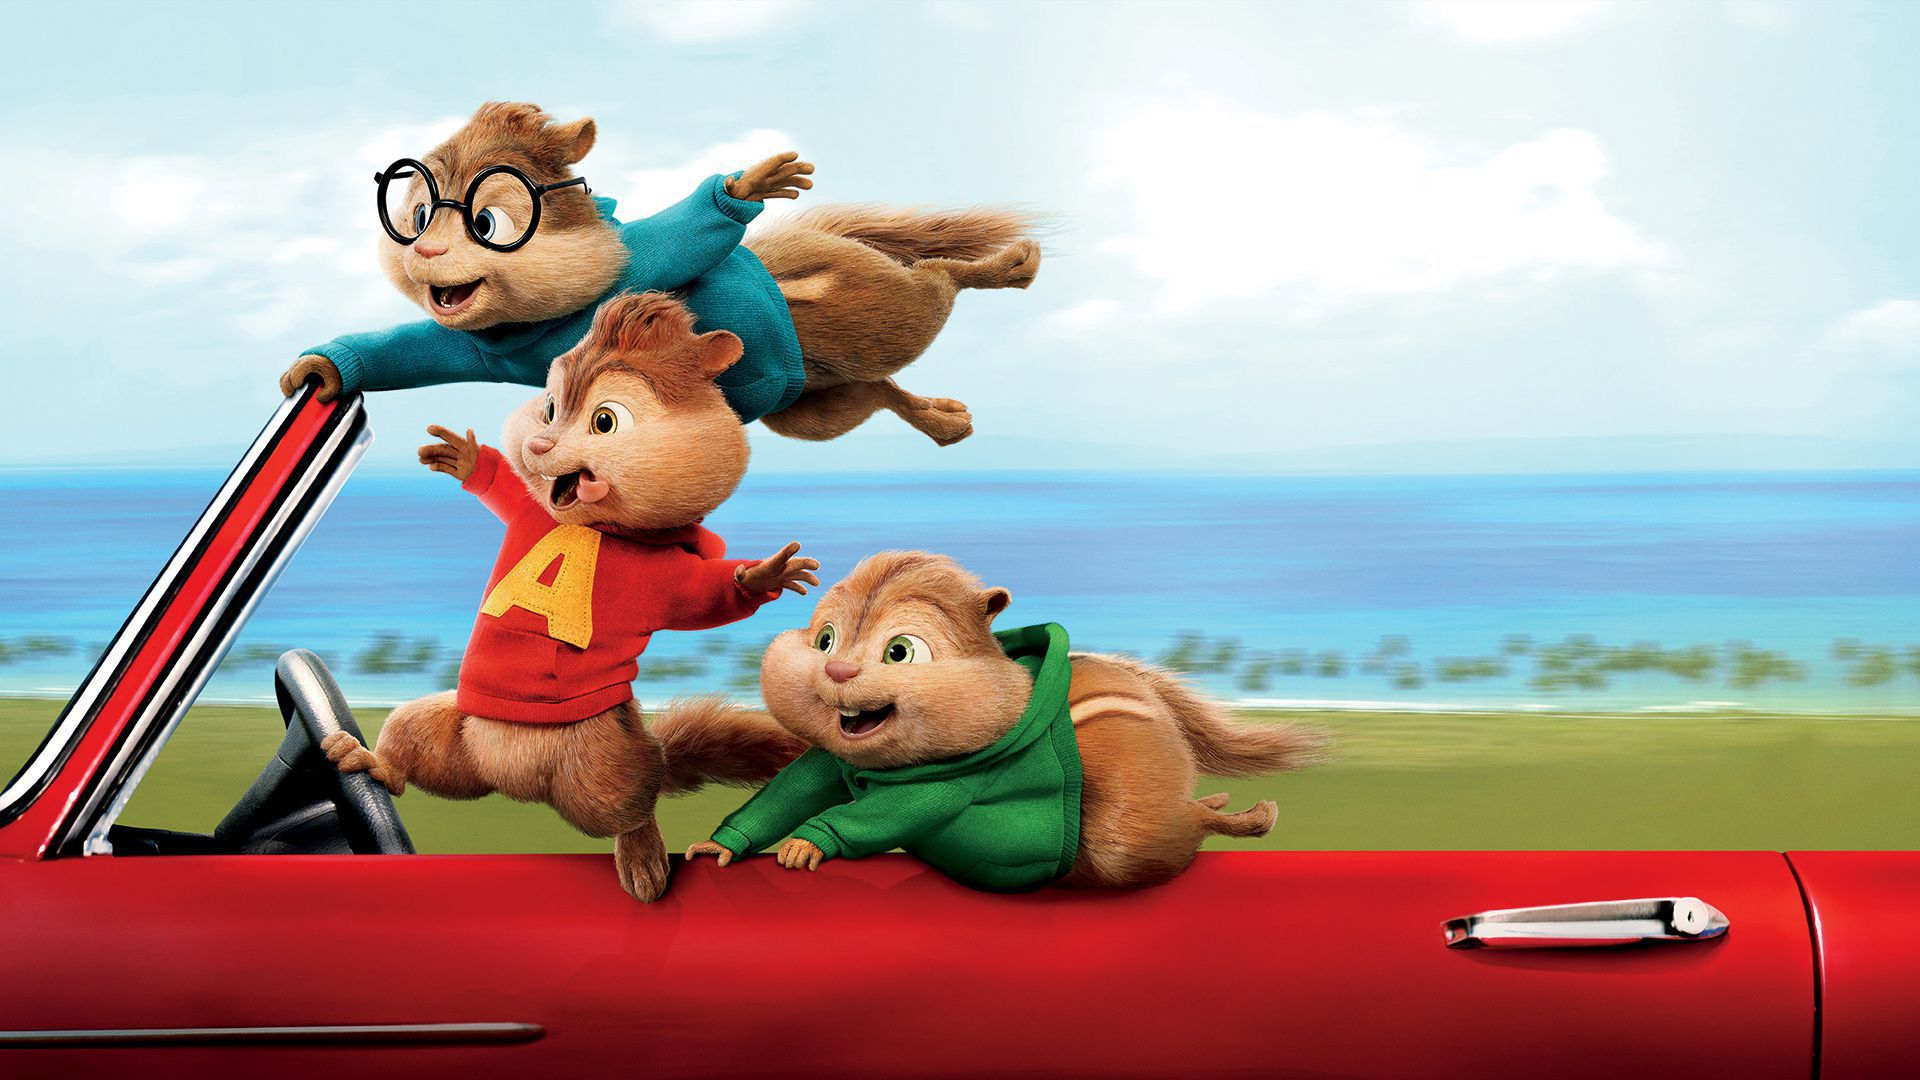 Alvin And The Chipmunks Images